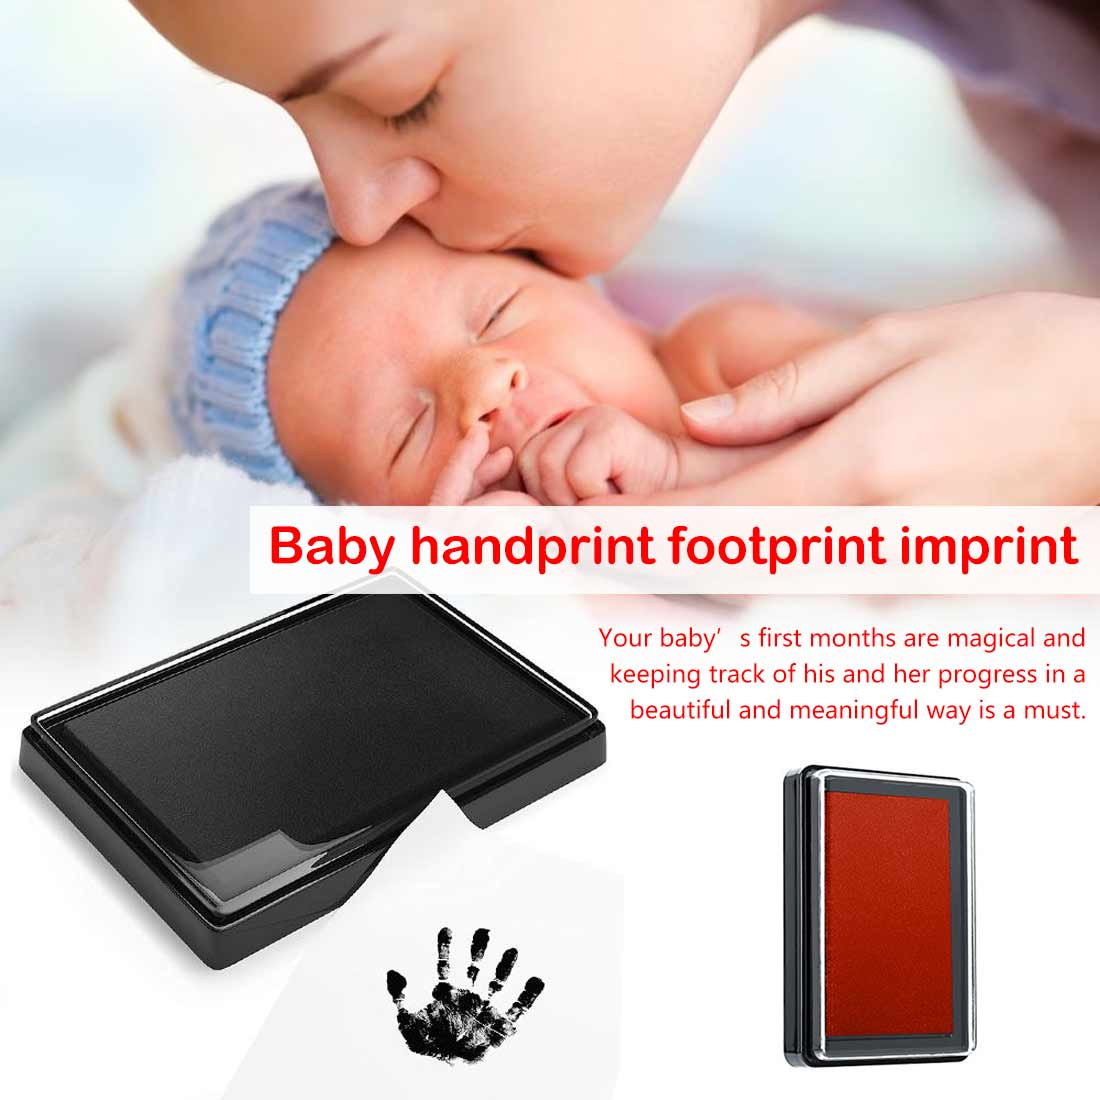 Baby Care Non-Toxic Baby Handprint Footprint Imprint Kit Baby Souvenirs Casting Newborn Footprint Ink Pad Infant Clay Toy